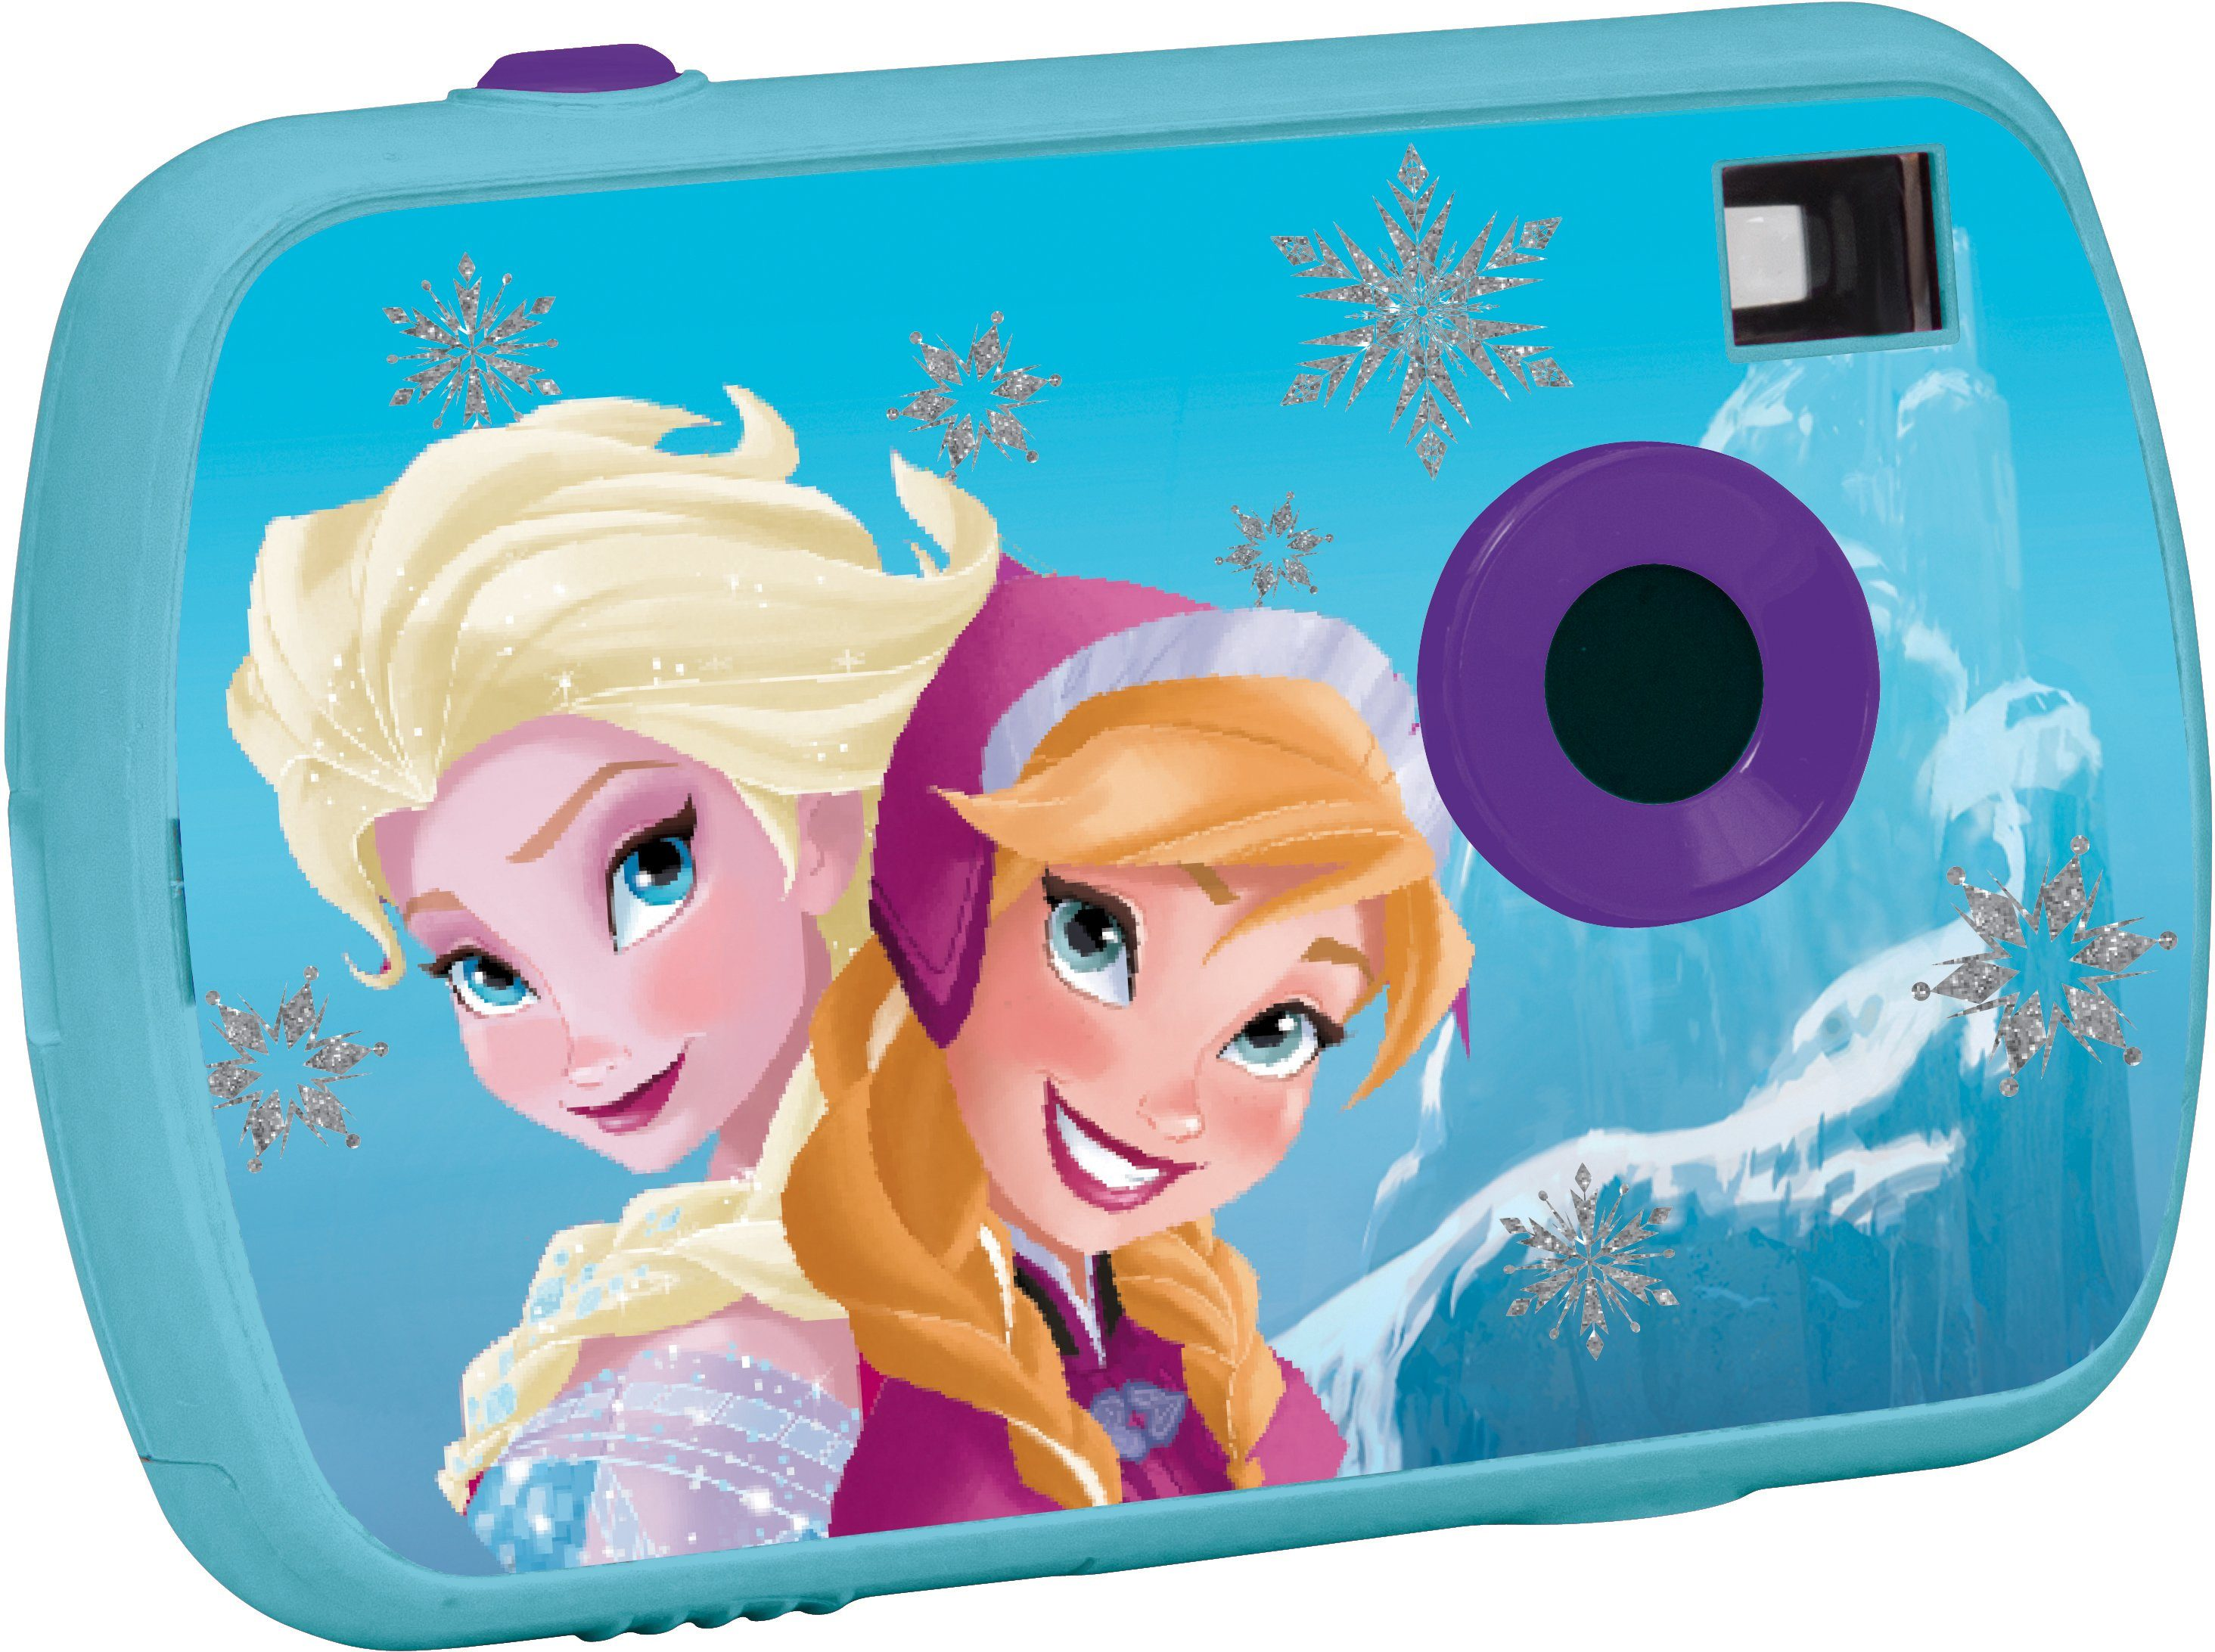 Lexibook, Digitalkamera mit Videofunktion, »Disney, Frozen«